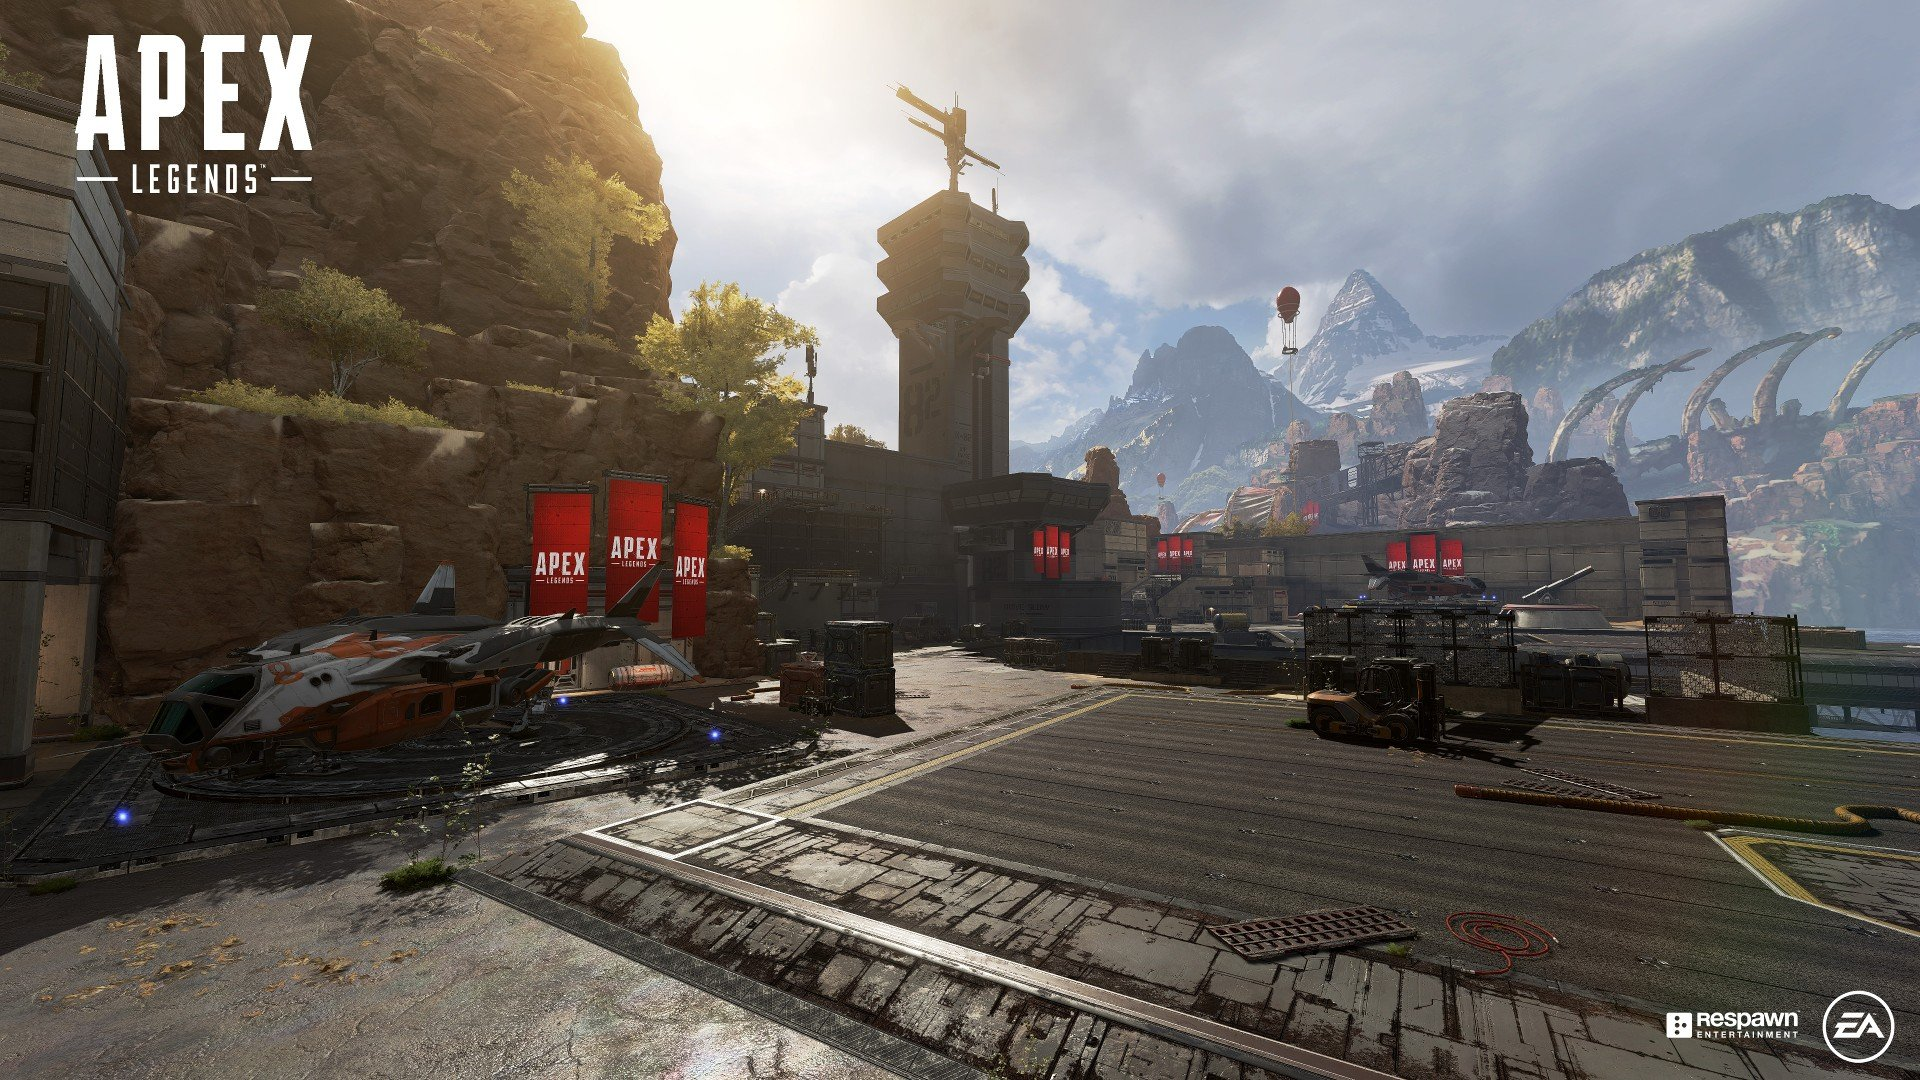 Apex Legends is available now on PC, PS4, and Xbox One.